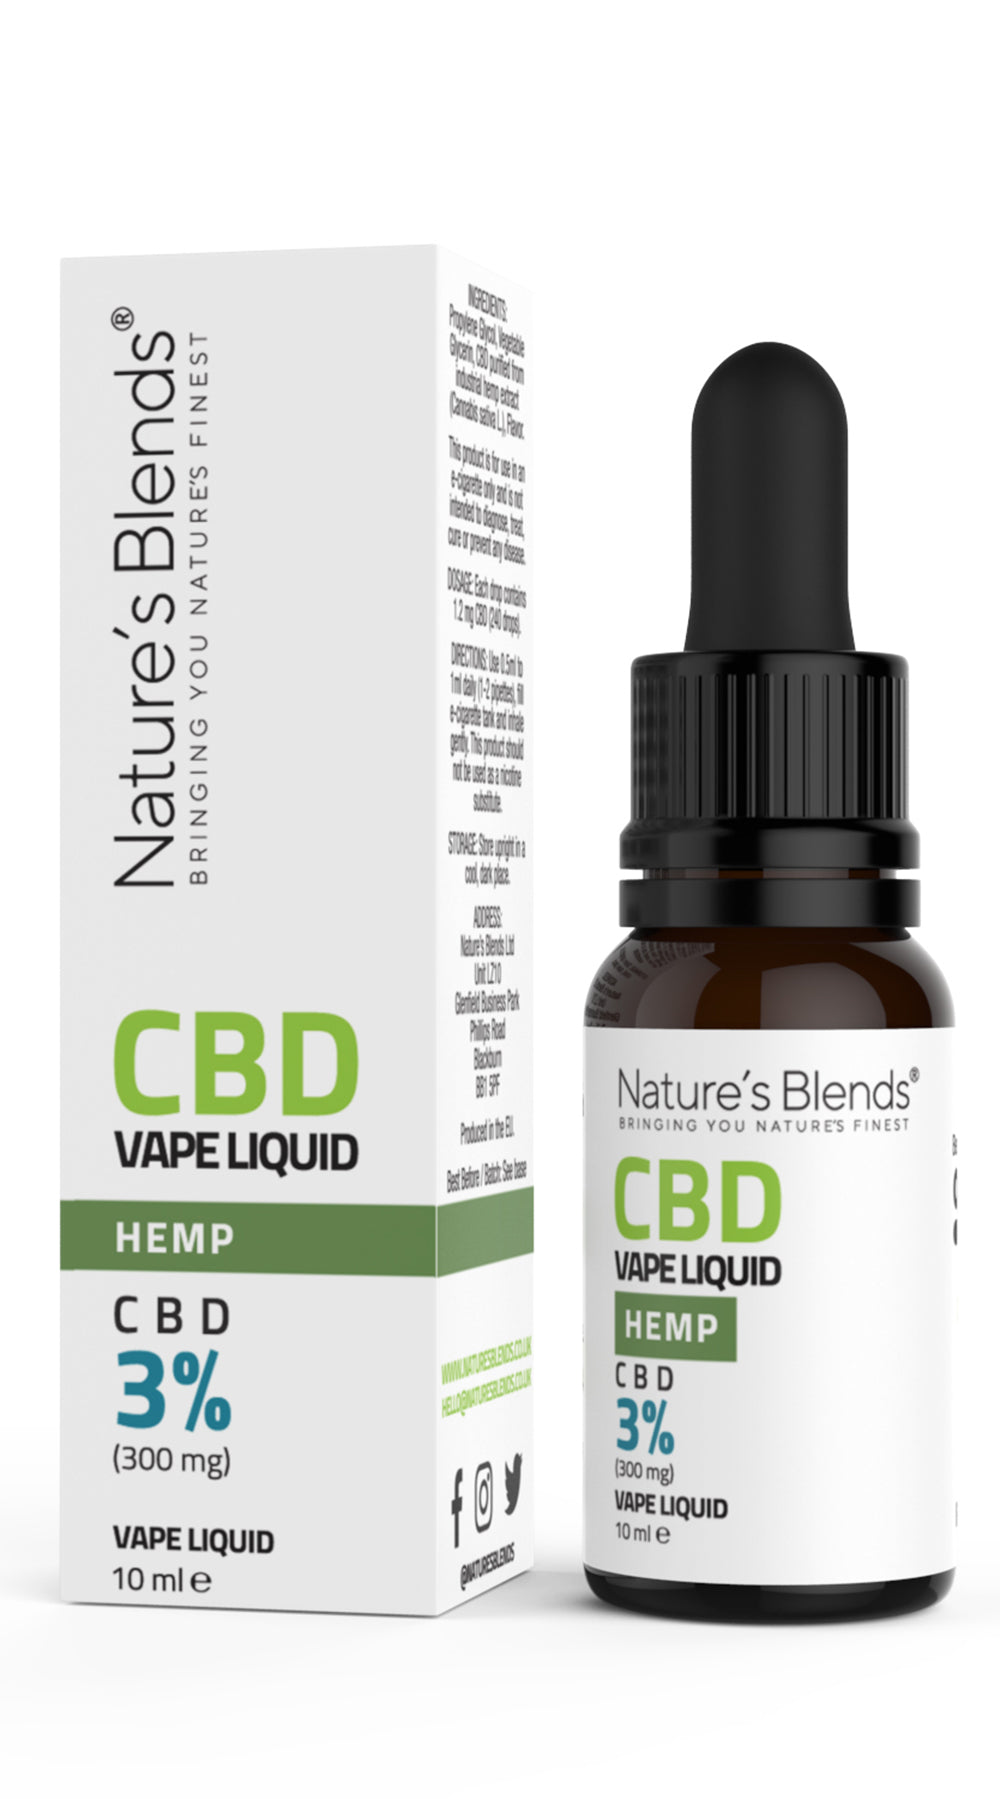 A 10ml bottle of 300mg cbd vape hemp flavour along side natures blends packaging